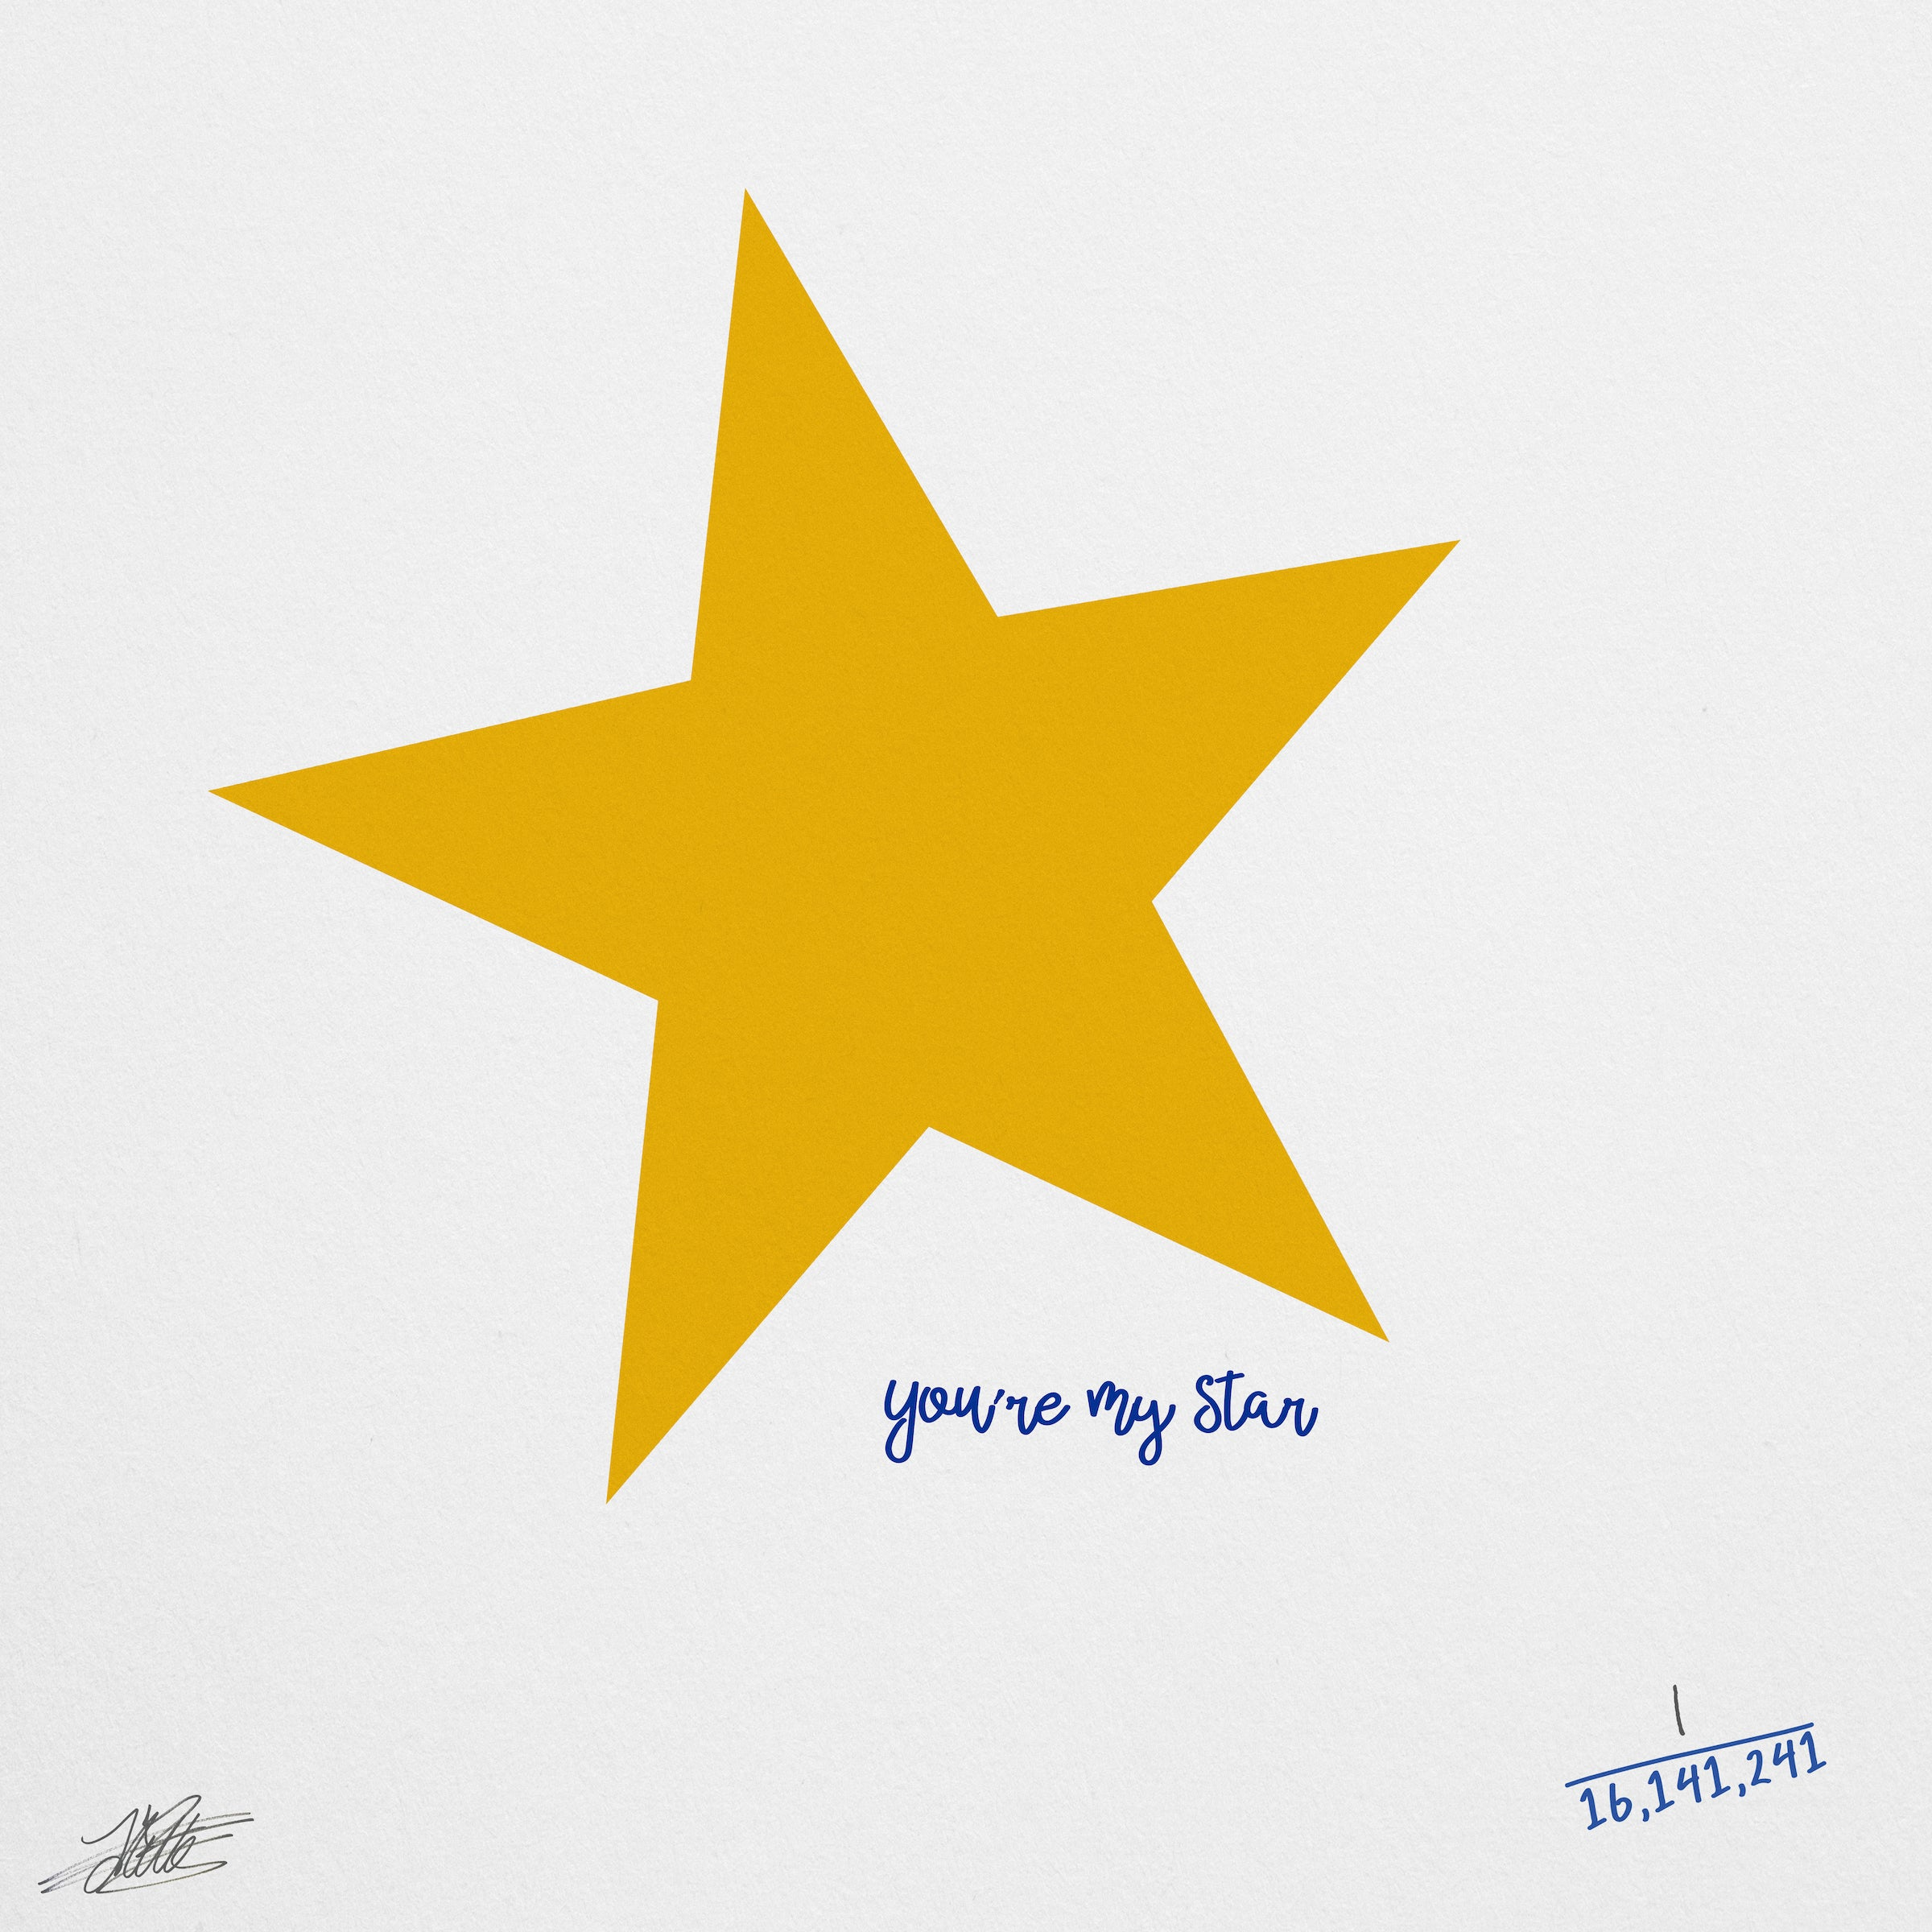 Jayson Lilley: You're My Star